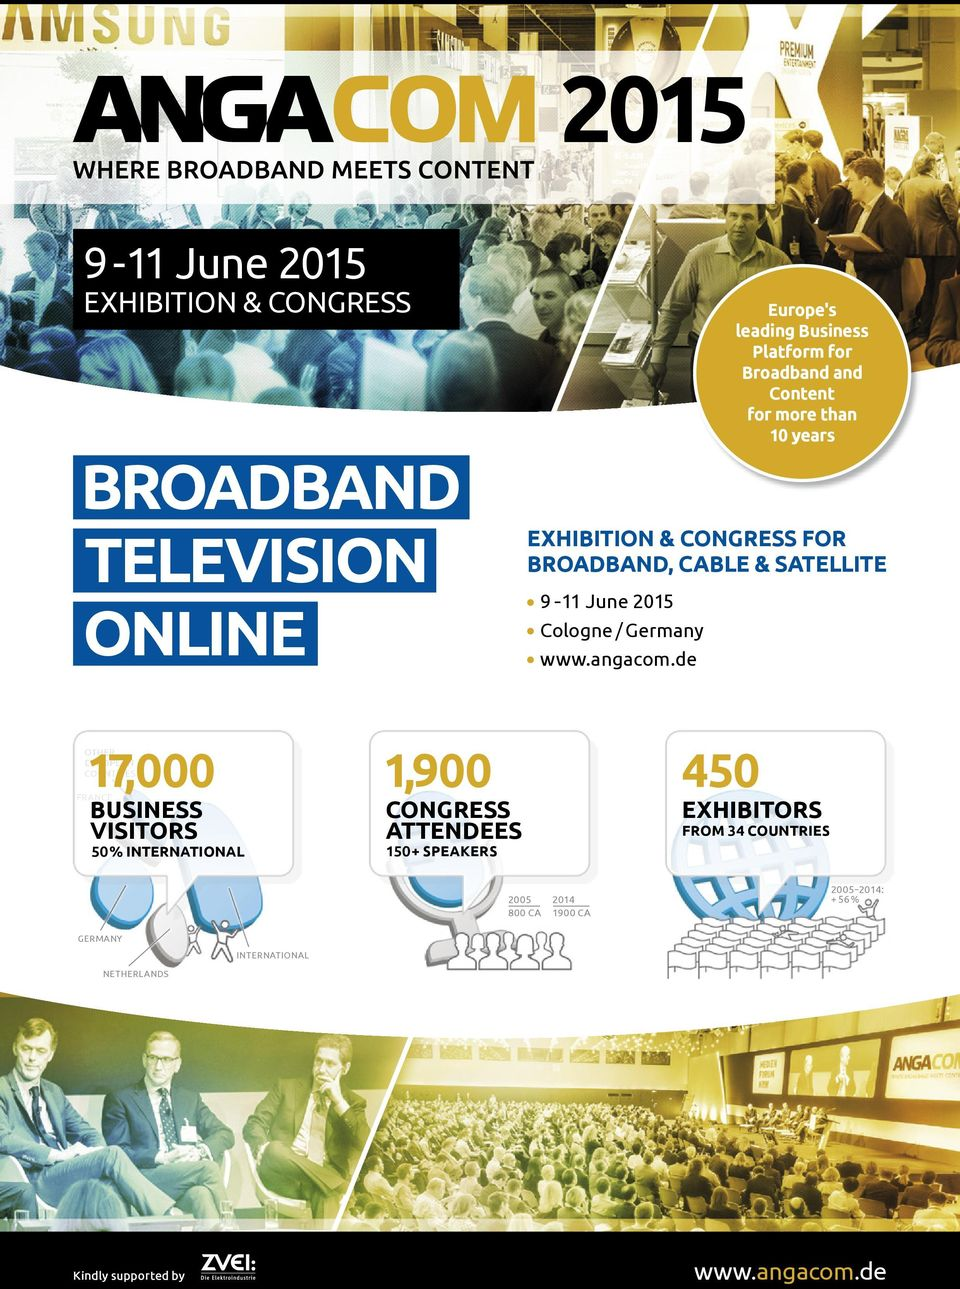 de Europe's leading Business Platform for Broadband and Content for more than 10 years 17,000 1,900 450 OTHER EUROPEAN COUNTRIES